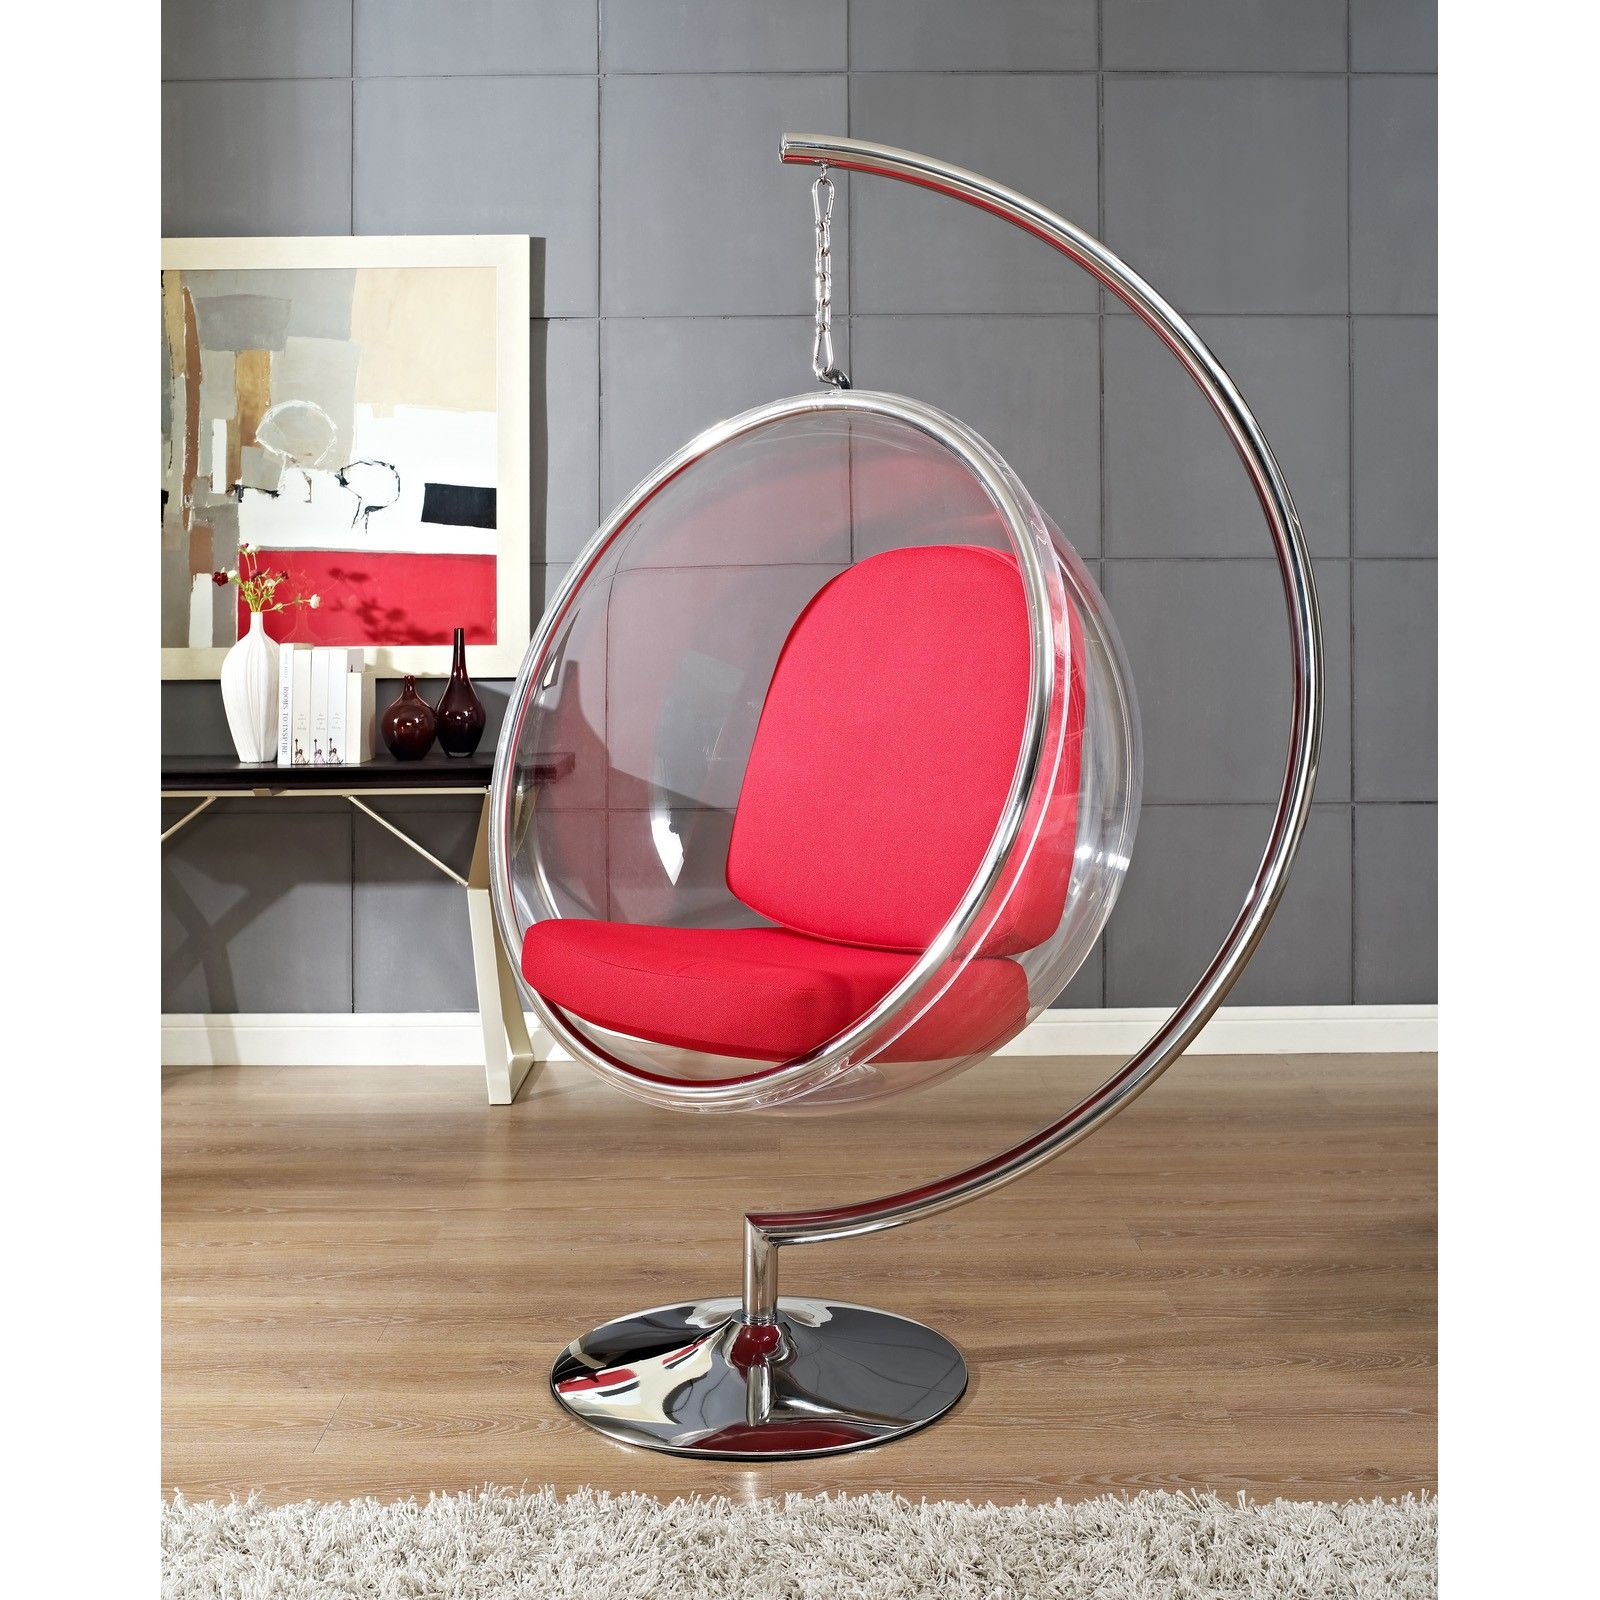 Baby Bedroom Sets Bedroom Hanging Chair Modern Bedroom Colours Examples Of Bedroom Paint Colors: Baby Nursery, Modern Hanging Bubble Chaise Chair Chrome